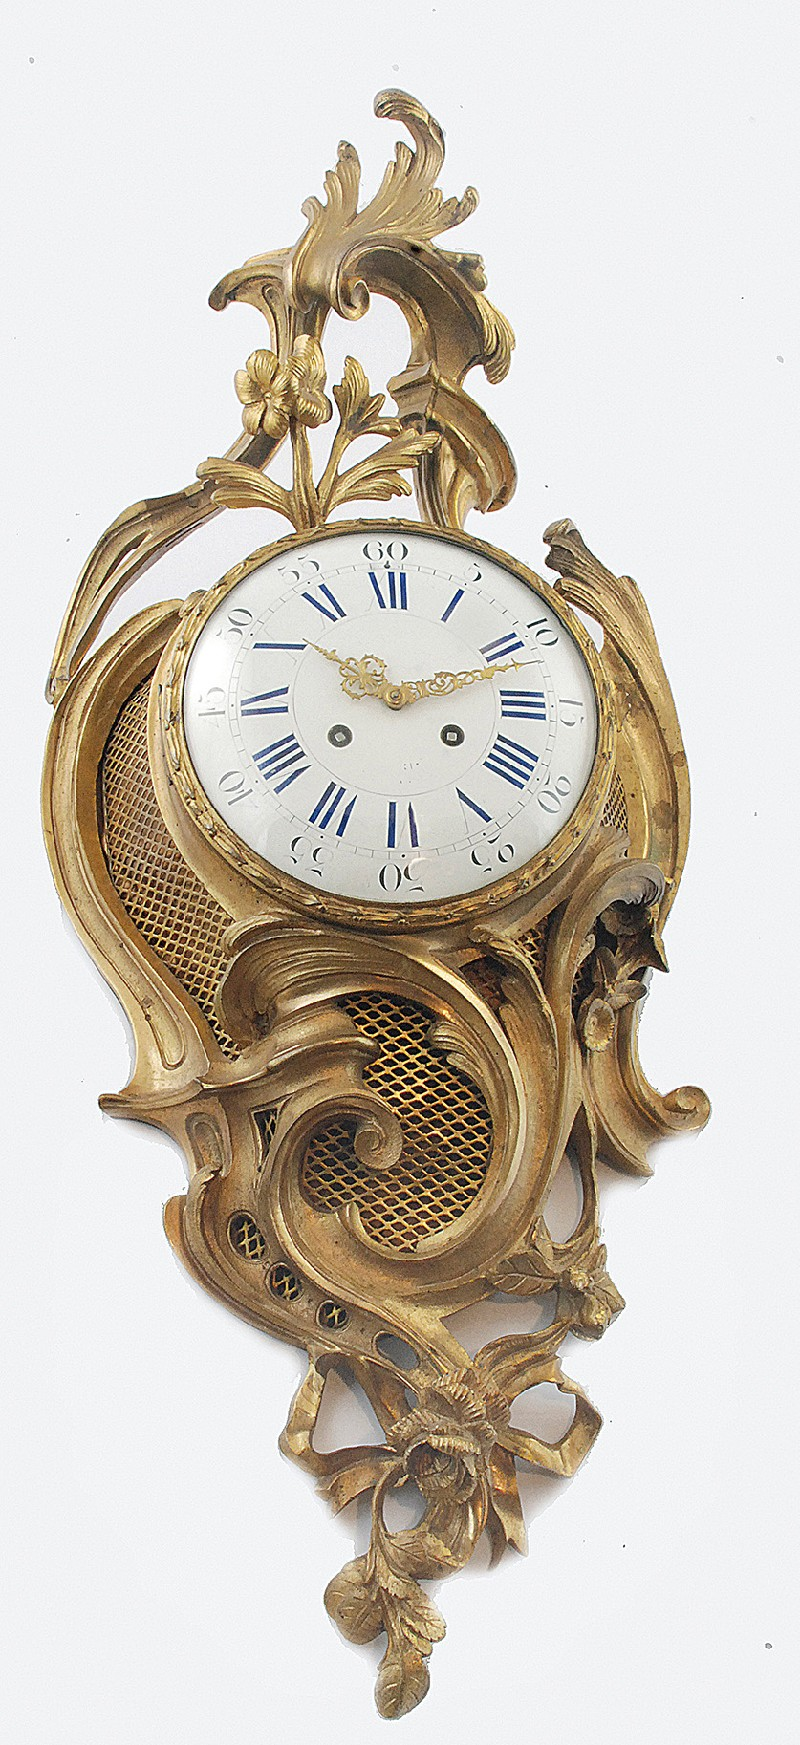 Wall Clock type of cartel, in the manner of rococo